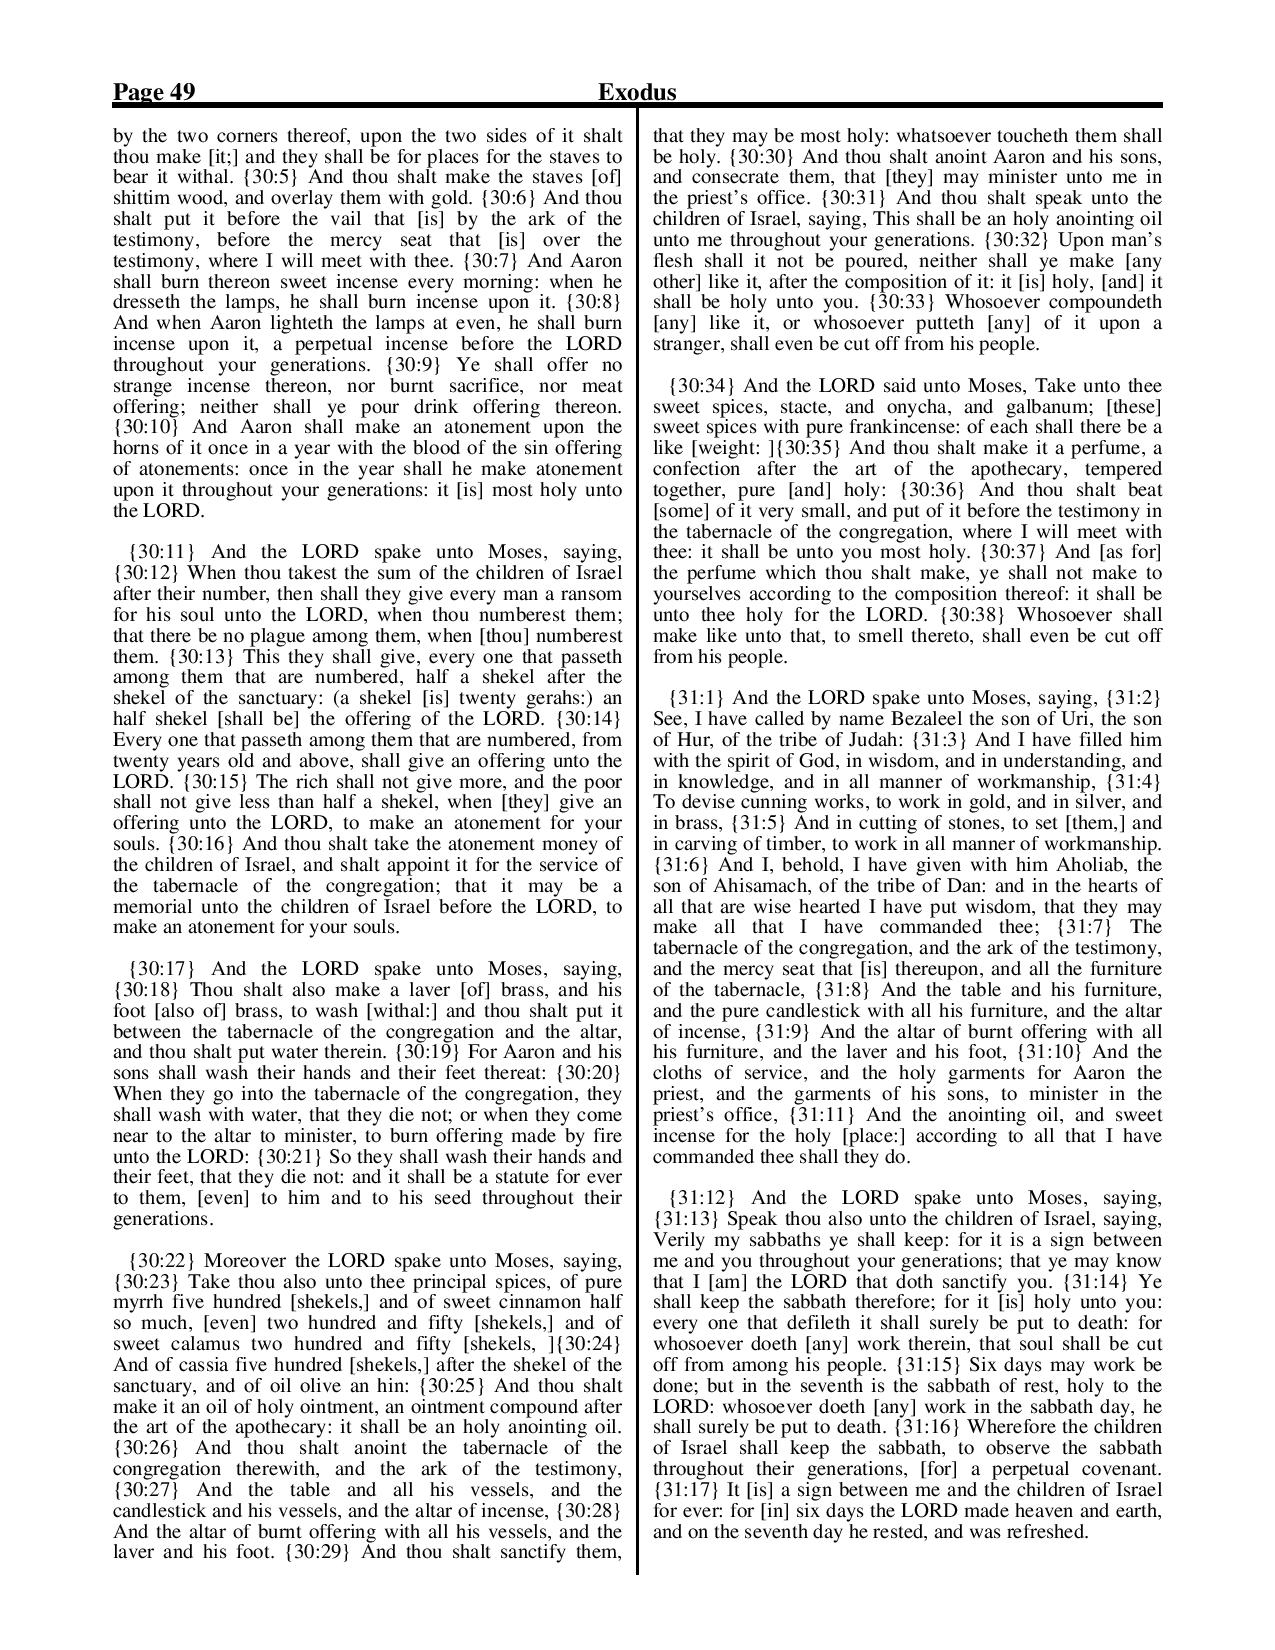 King-James-Bible-KJV-Bible-PDF-page-070